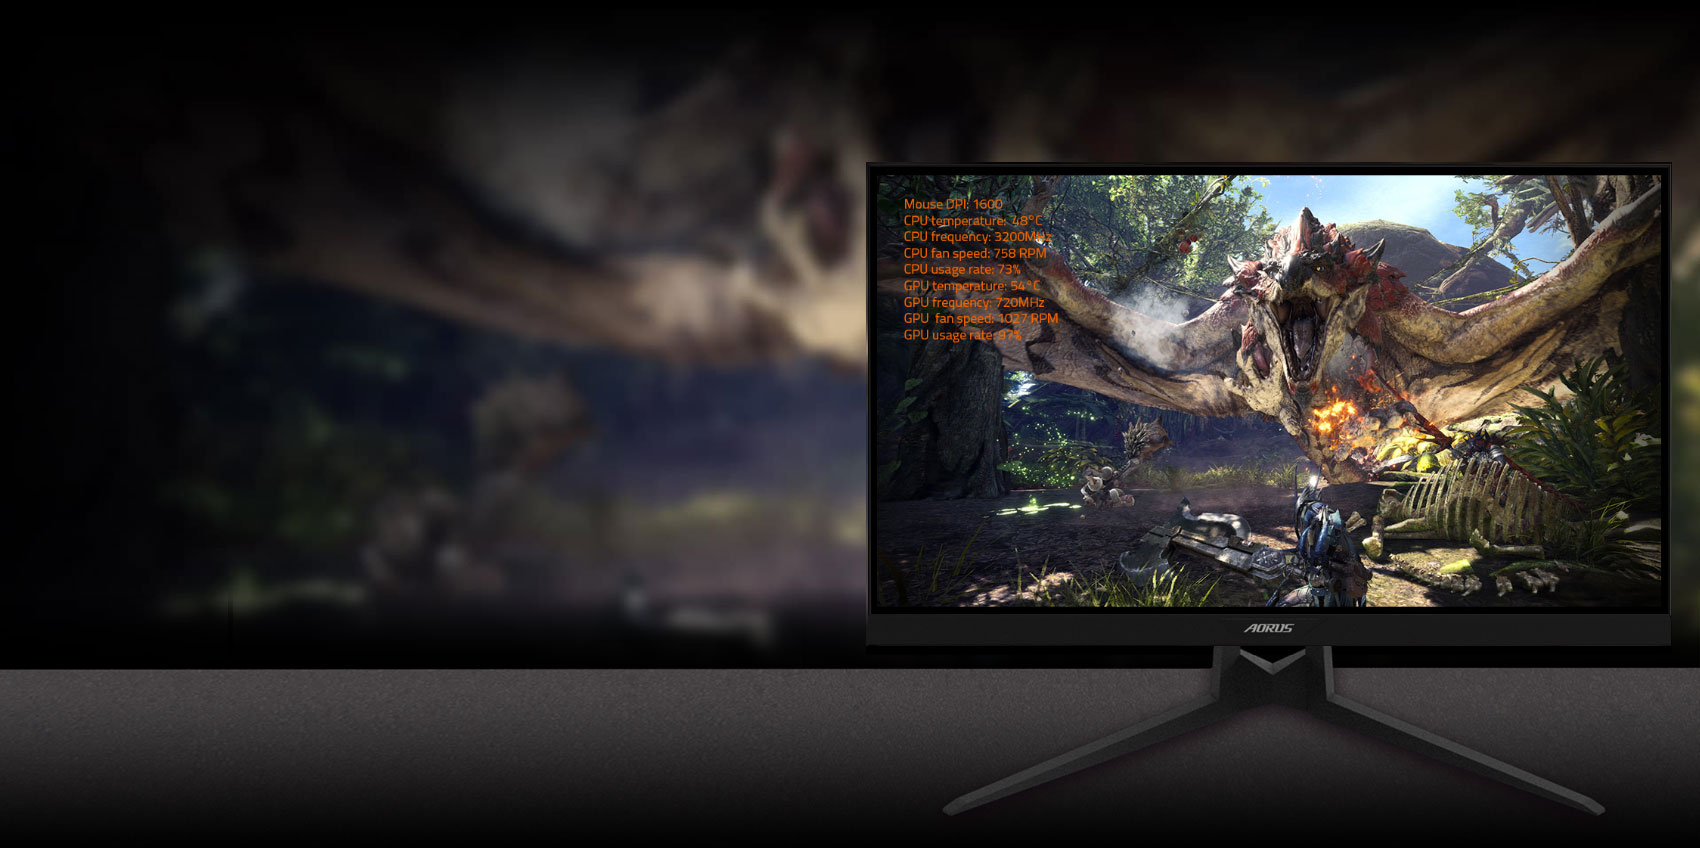 GIGABYTE AORUS FI27Q 27 Monitor Angled to the left, showing info won't be blocked by games with dashboard